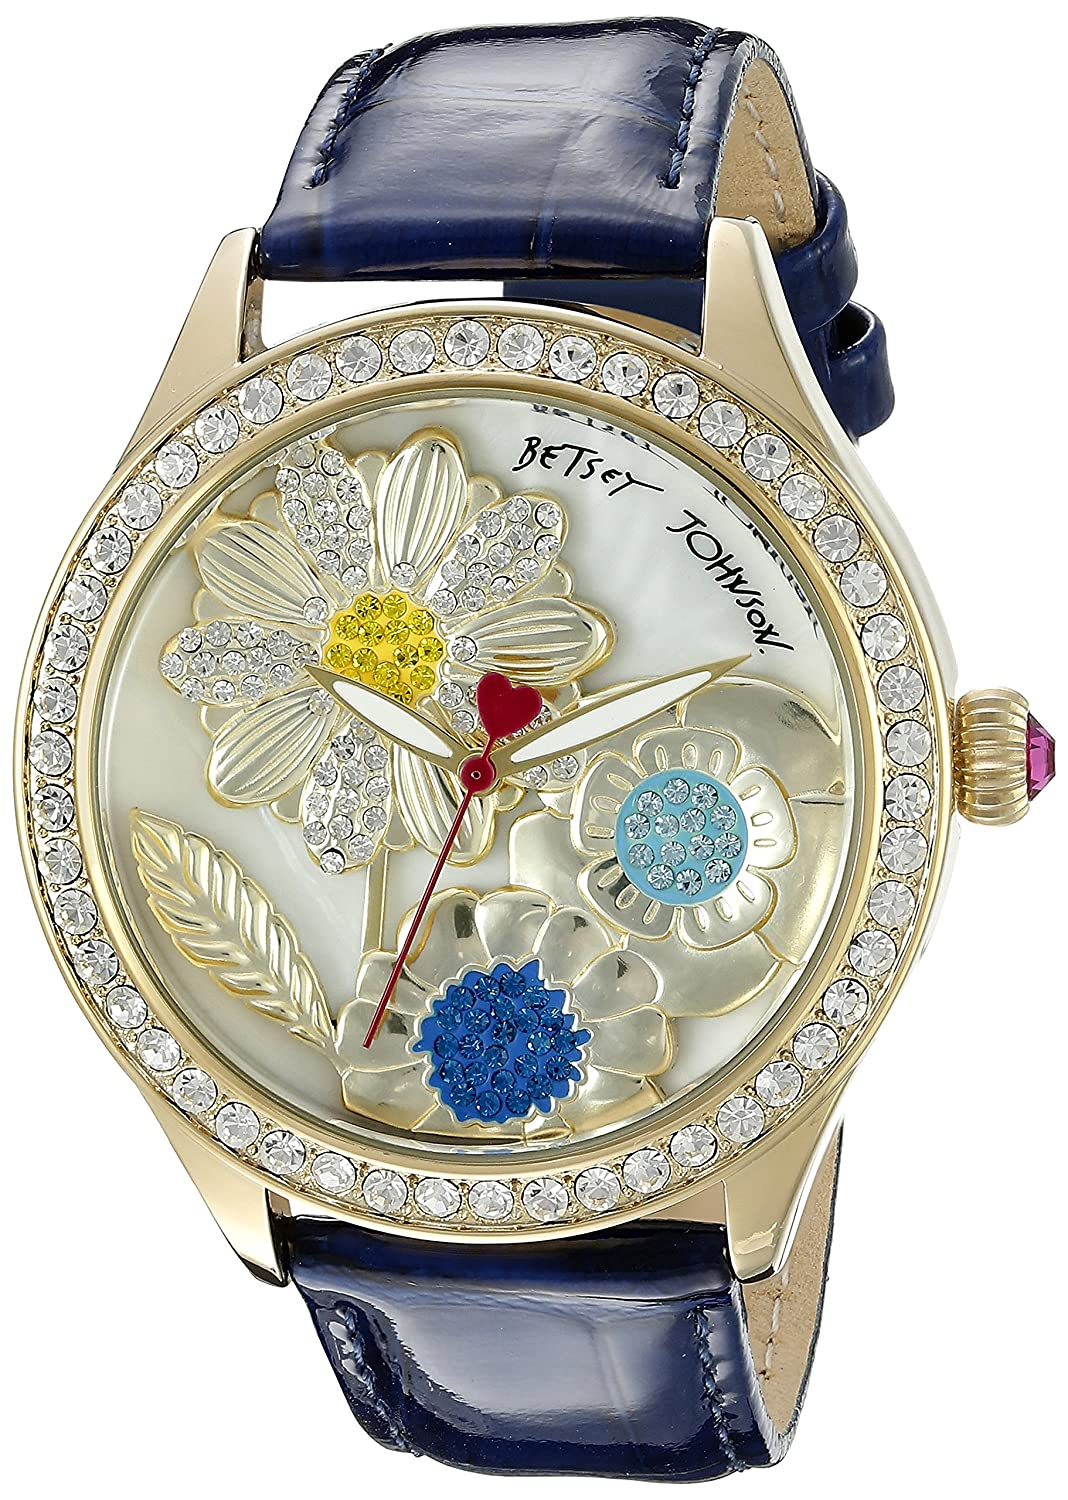 Betsey Johnson Women's BJ00517-13 Analog Display Quartz Blue Watch